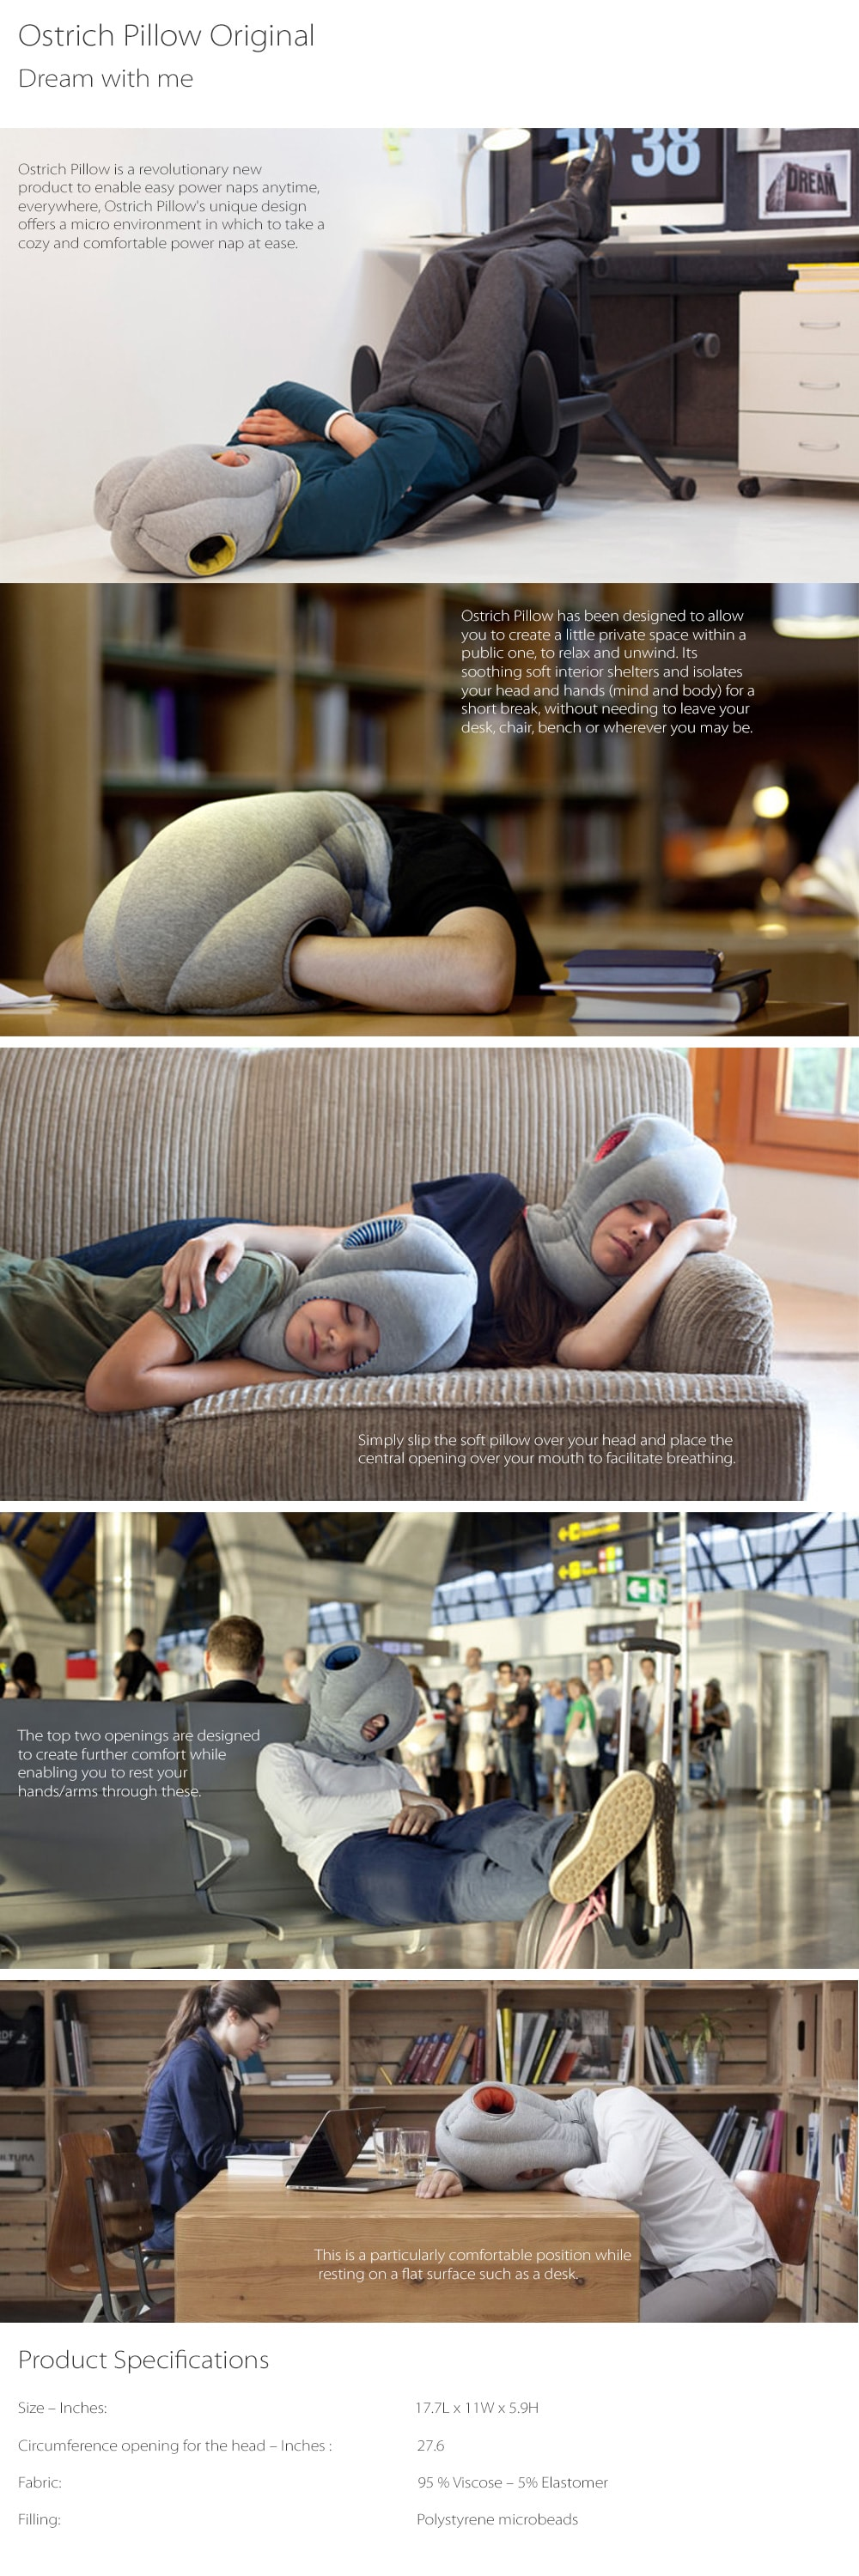 Ostrich Pillow Original Revolutionary Power Napping Device